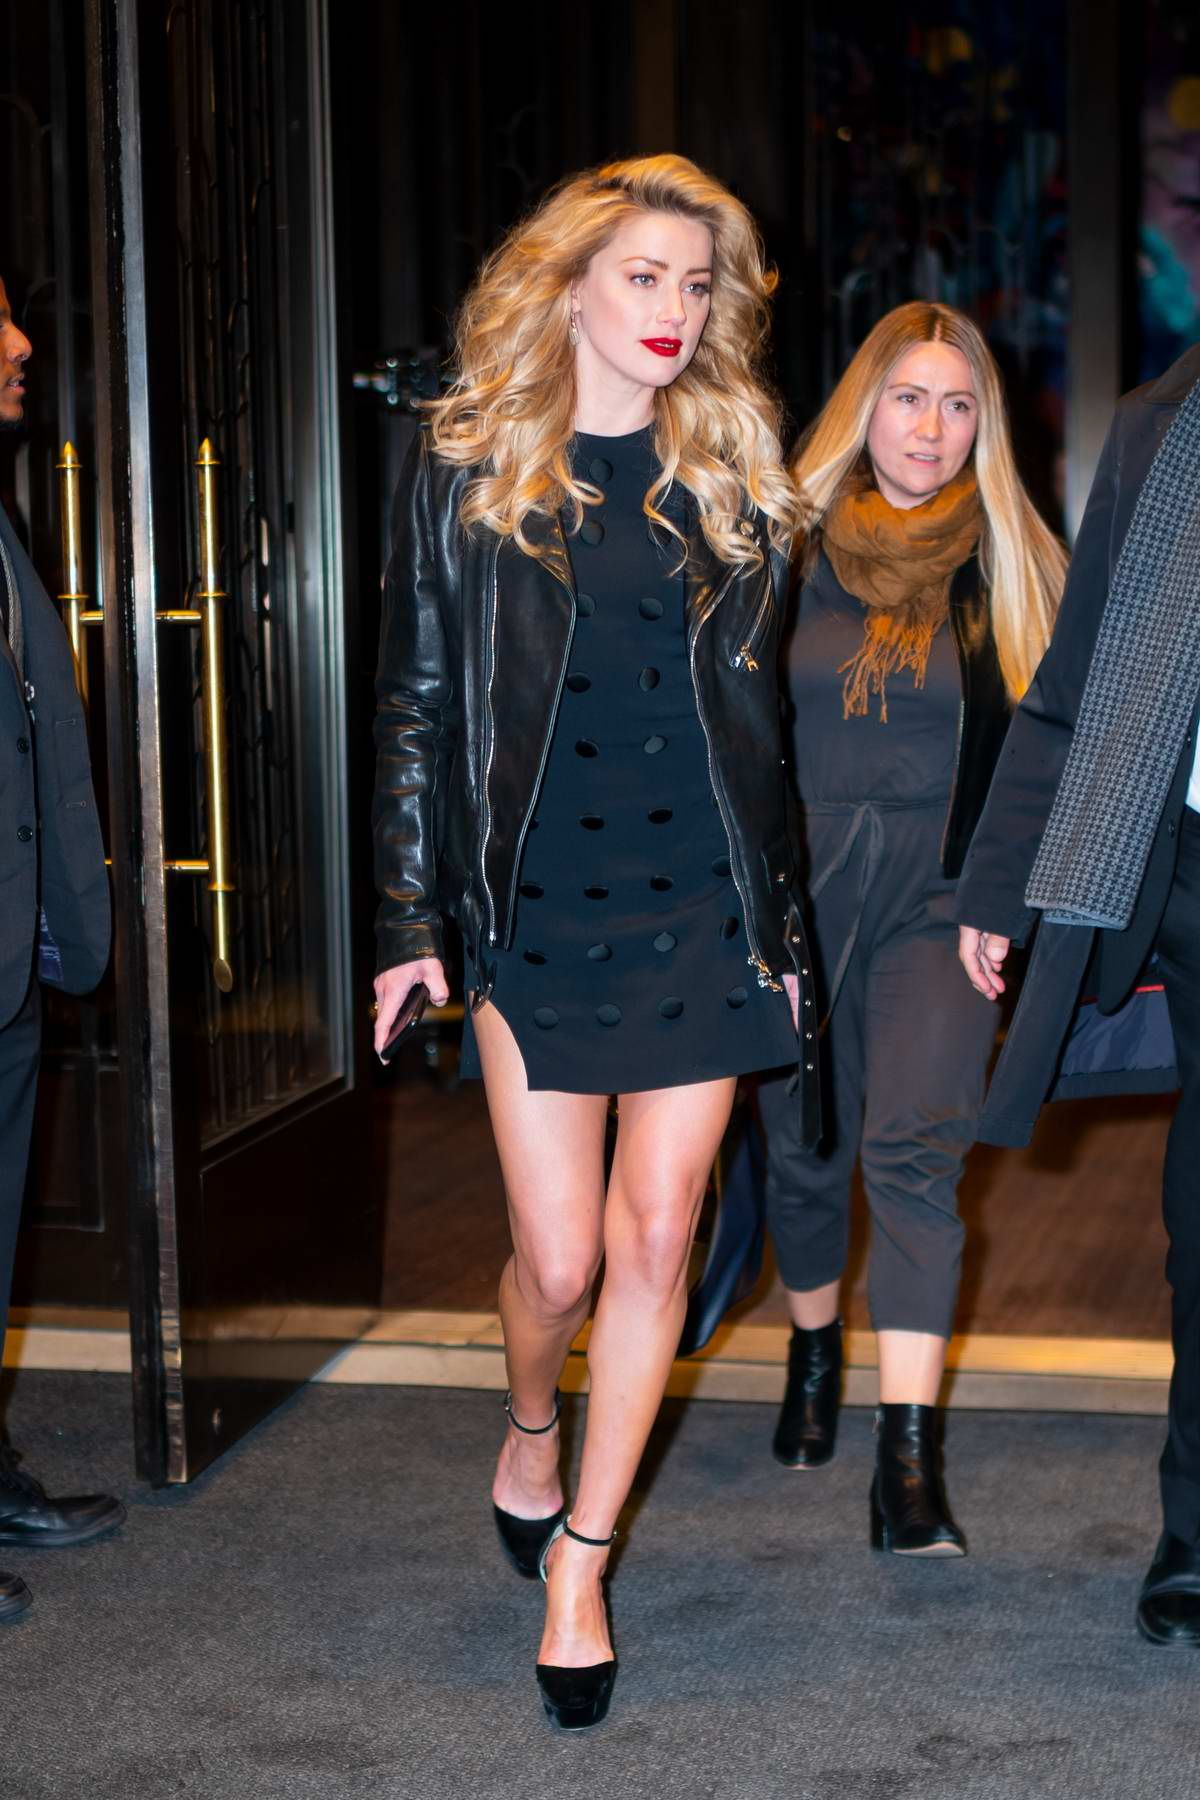 Amber Heard looks stunning in a short black dress and leather jacket as she arrives to the screening of 'Aquaman' in New York City